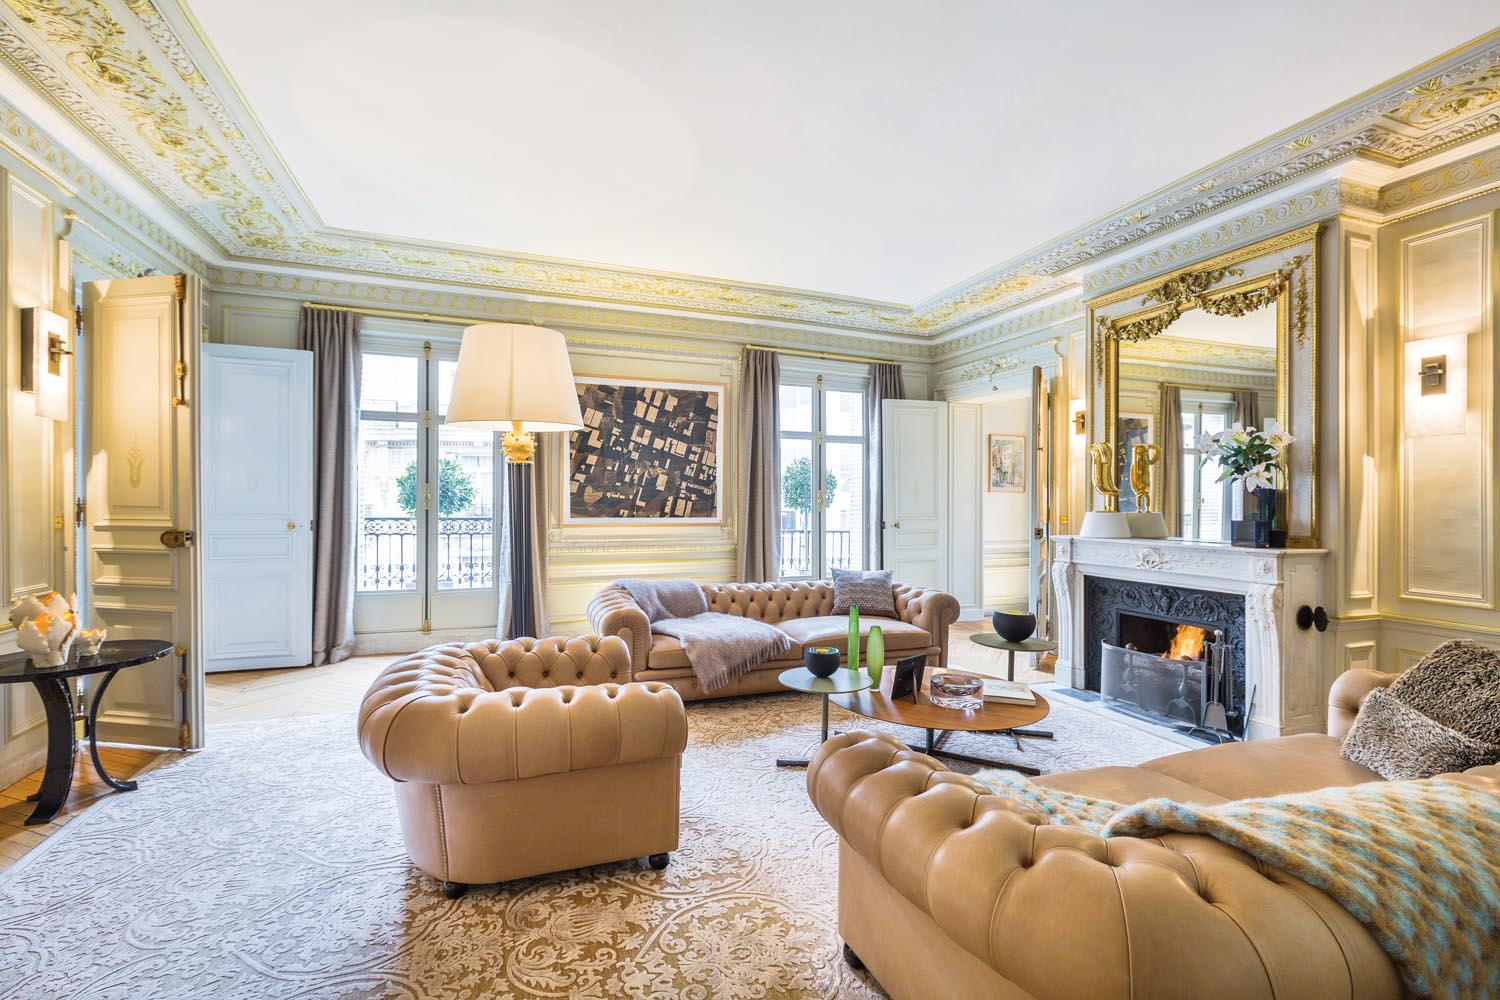 Chesterfield lounges evoke a sense of tradition in a room filled with gold